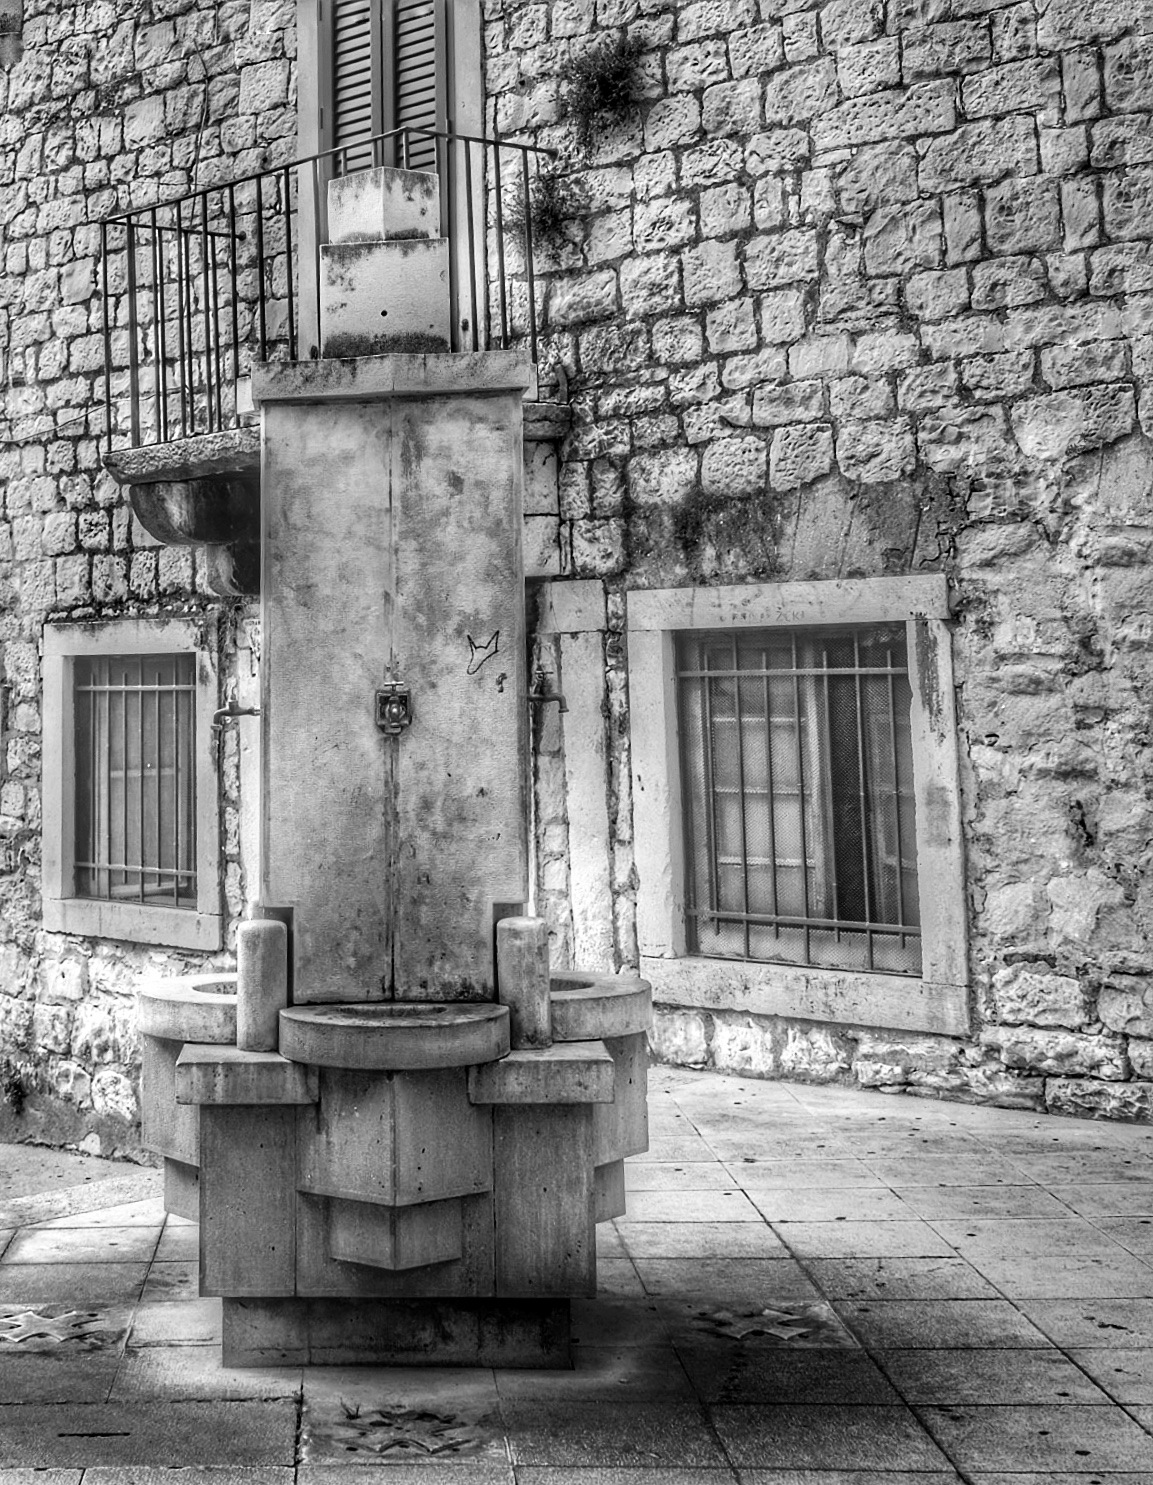 Water Fountain...bw240501 by Michael jjg